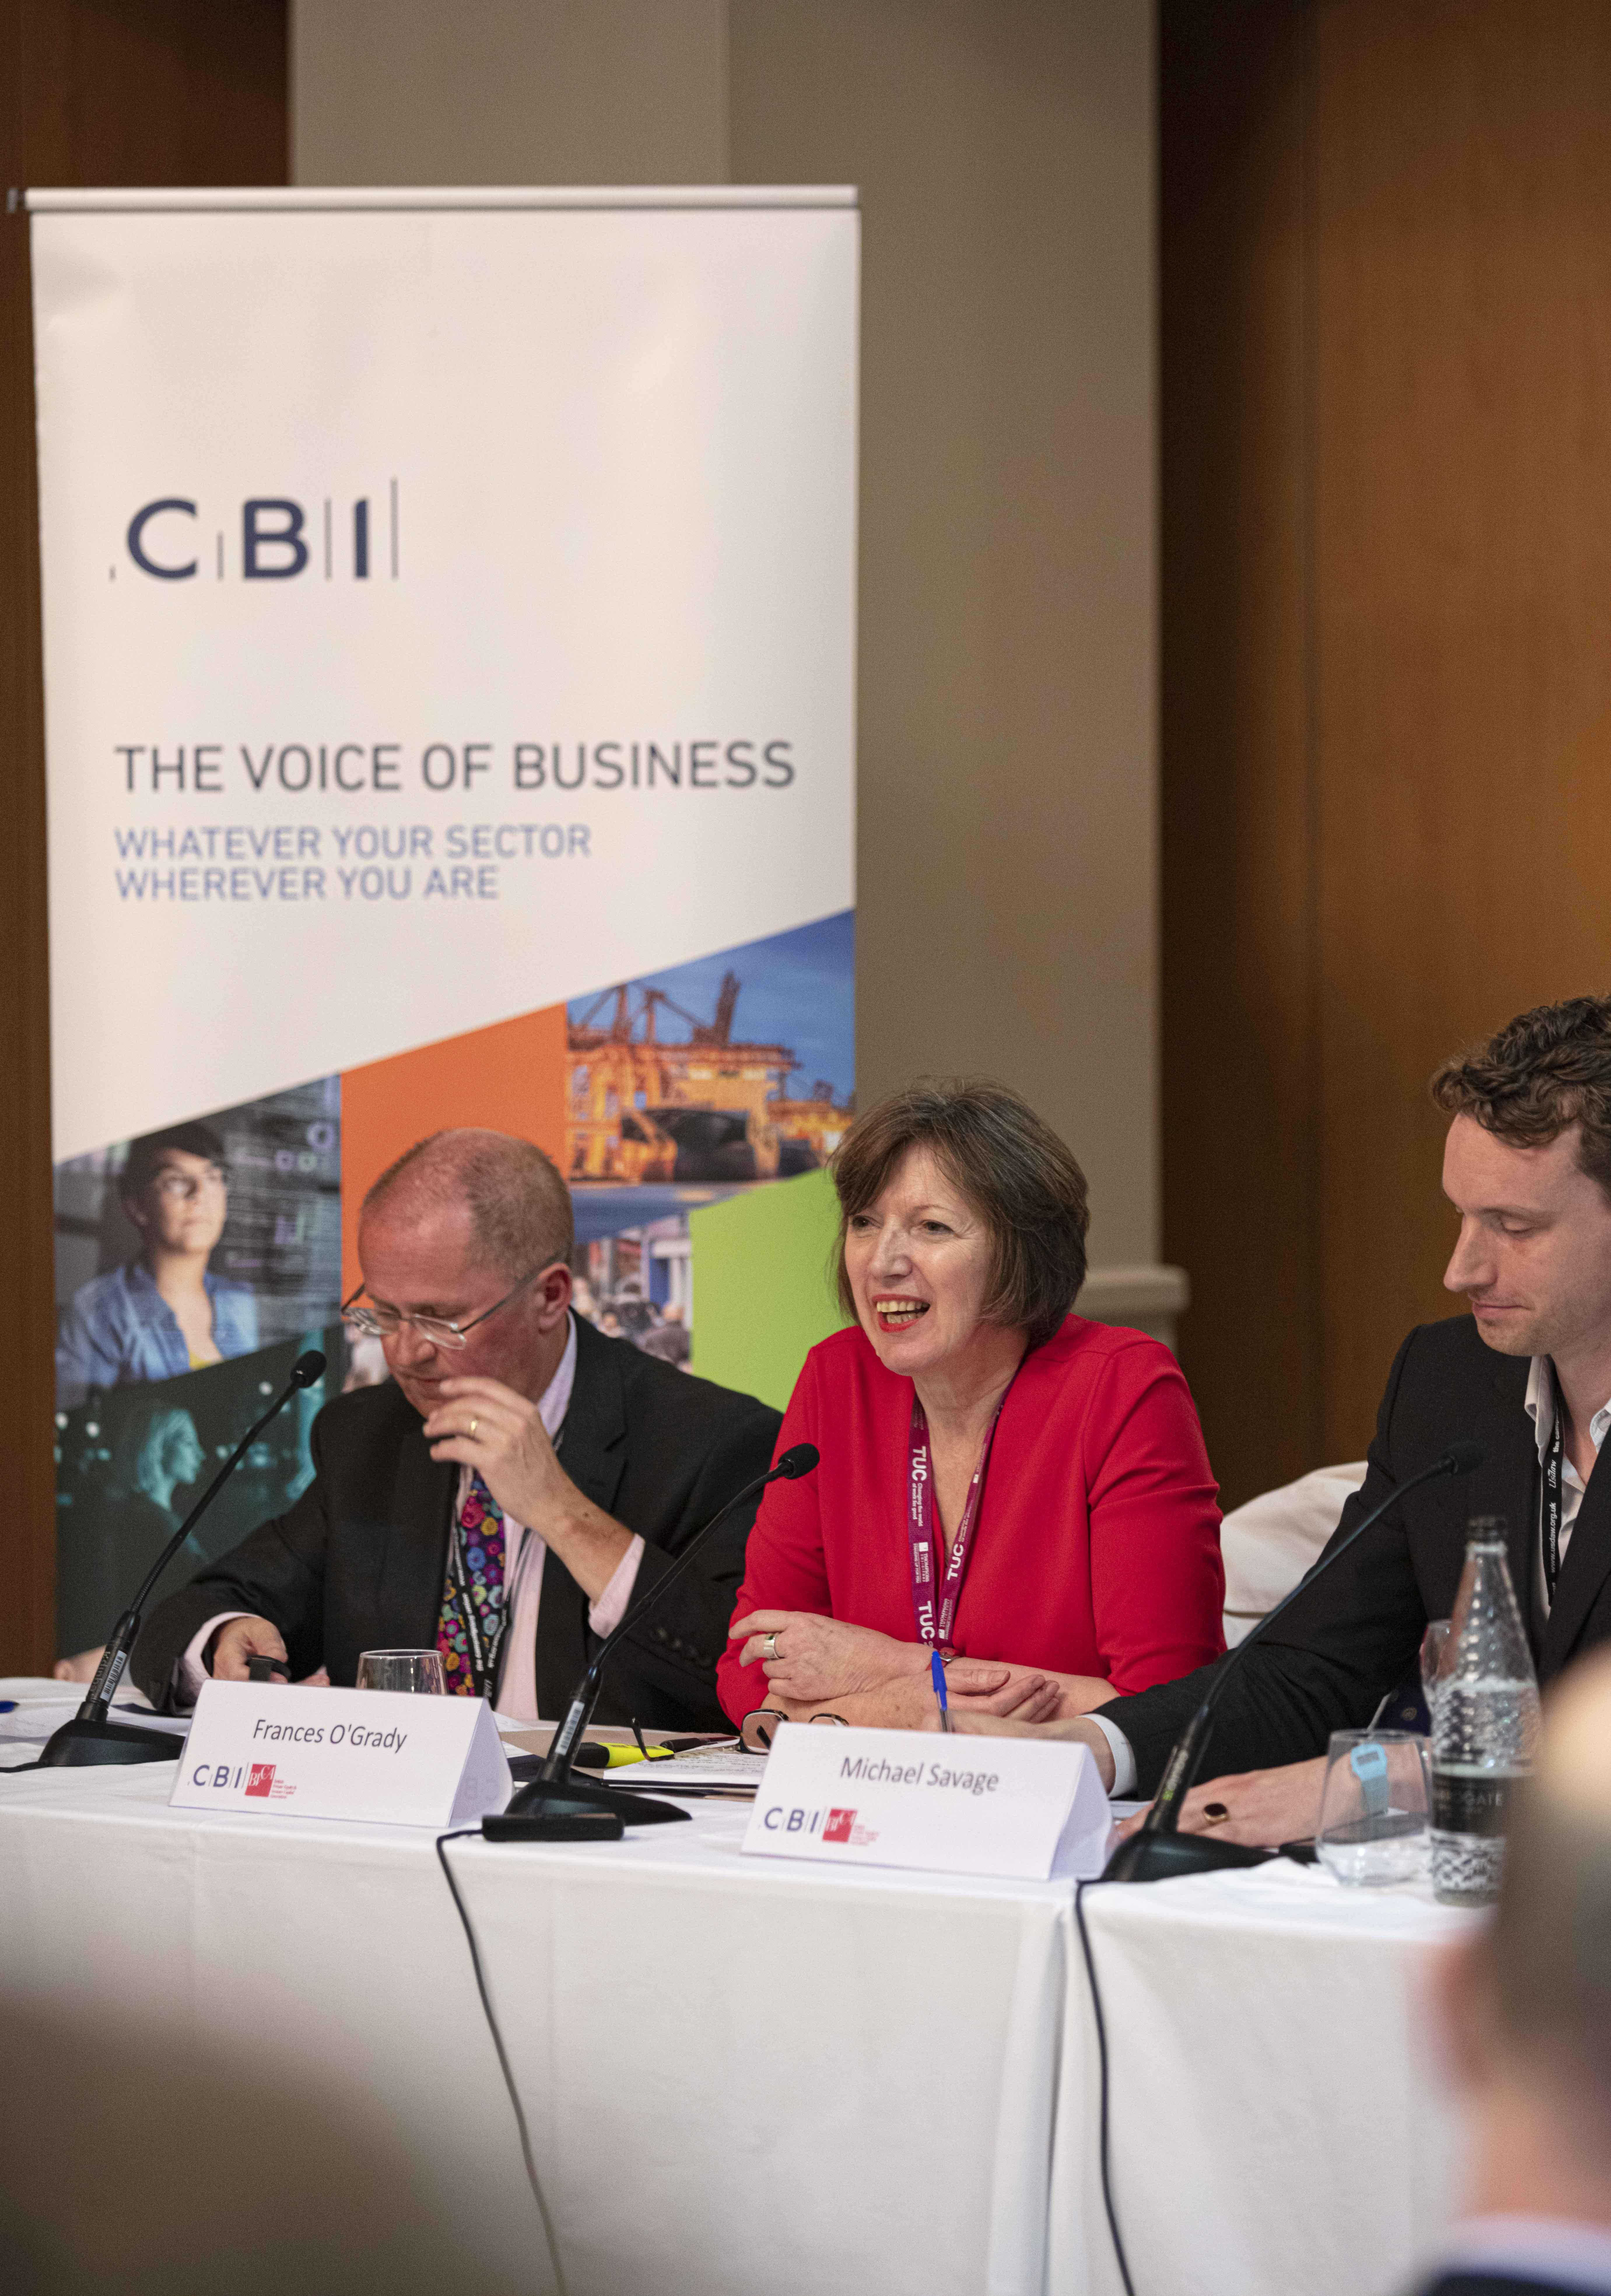 Peter O'Dowd MP speaking at the CBI Fringe